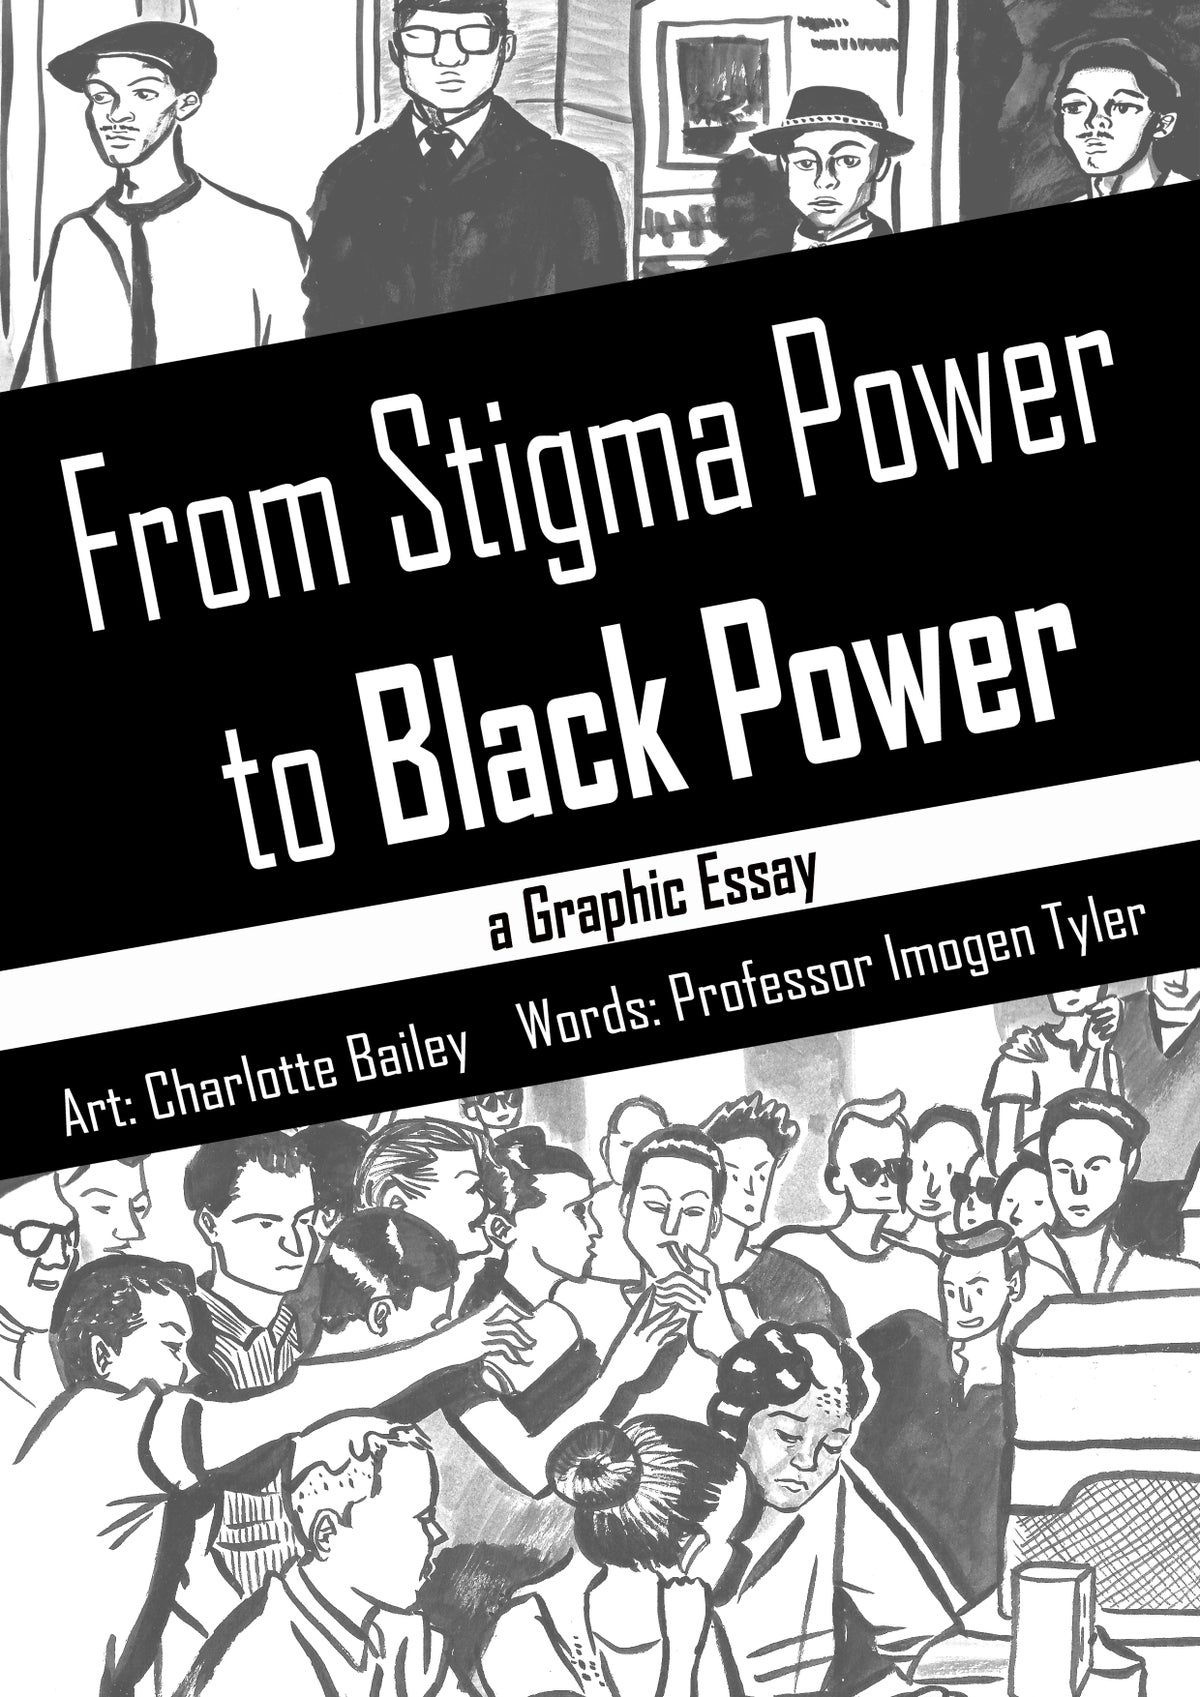 Image of From Stigma Power to Black Power: a Graphic Essay